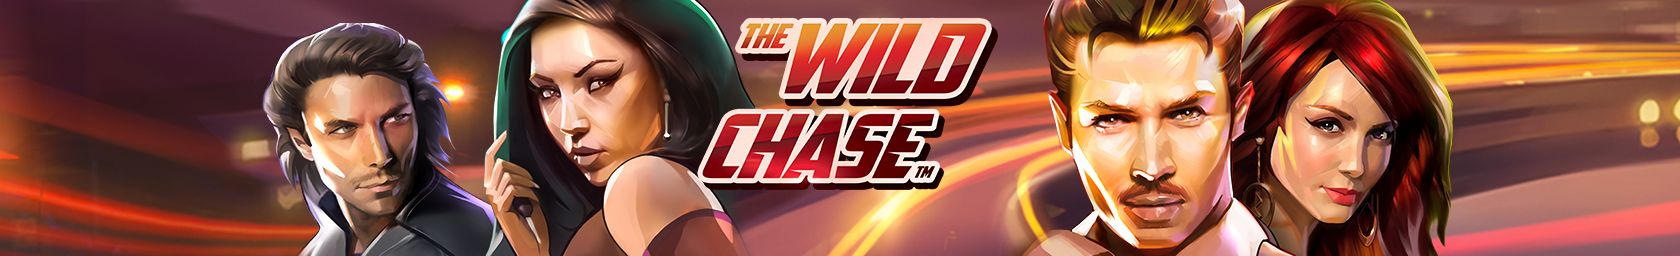 The Wild Chase Slot Banner